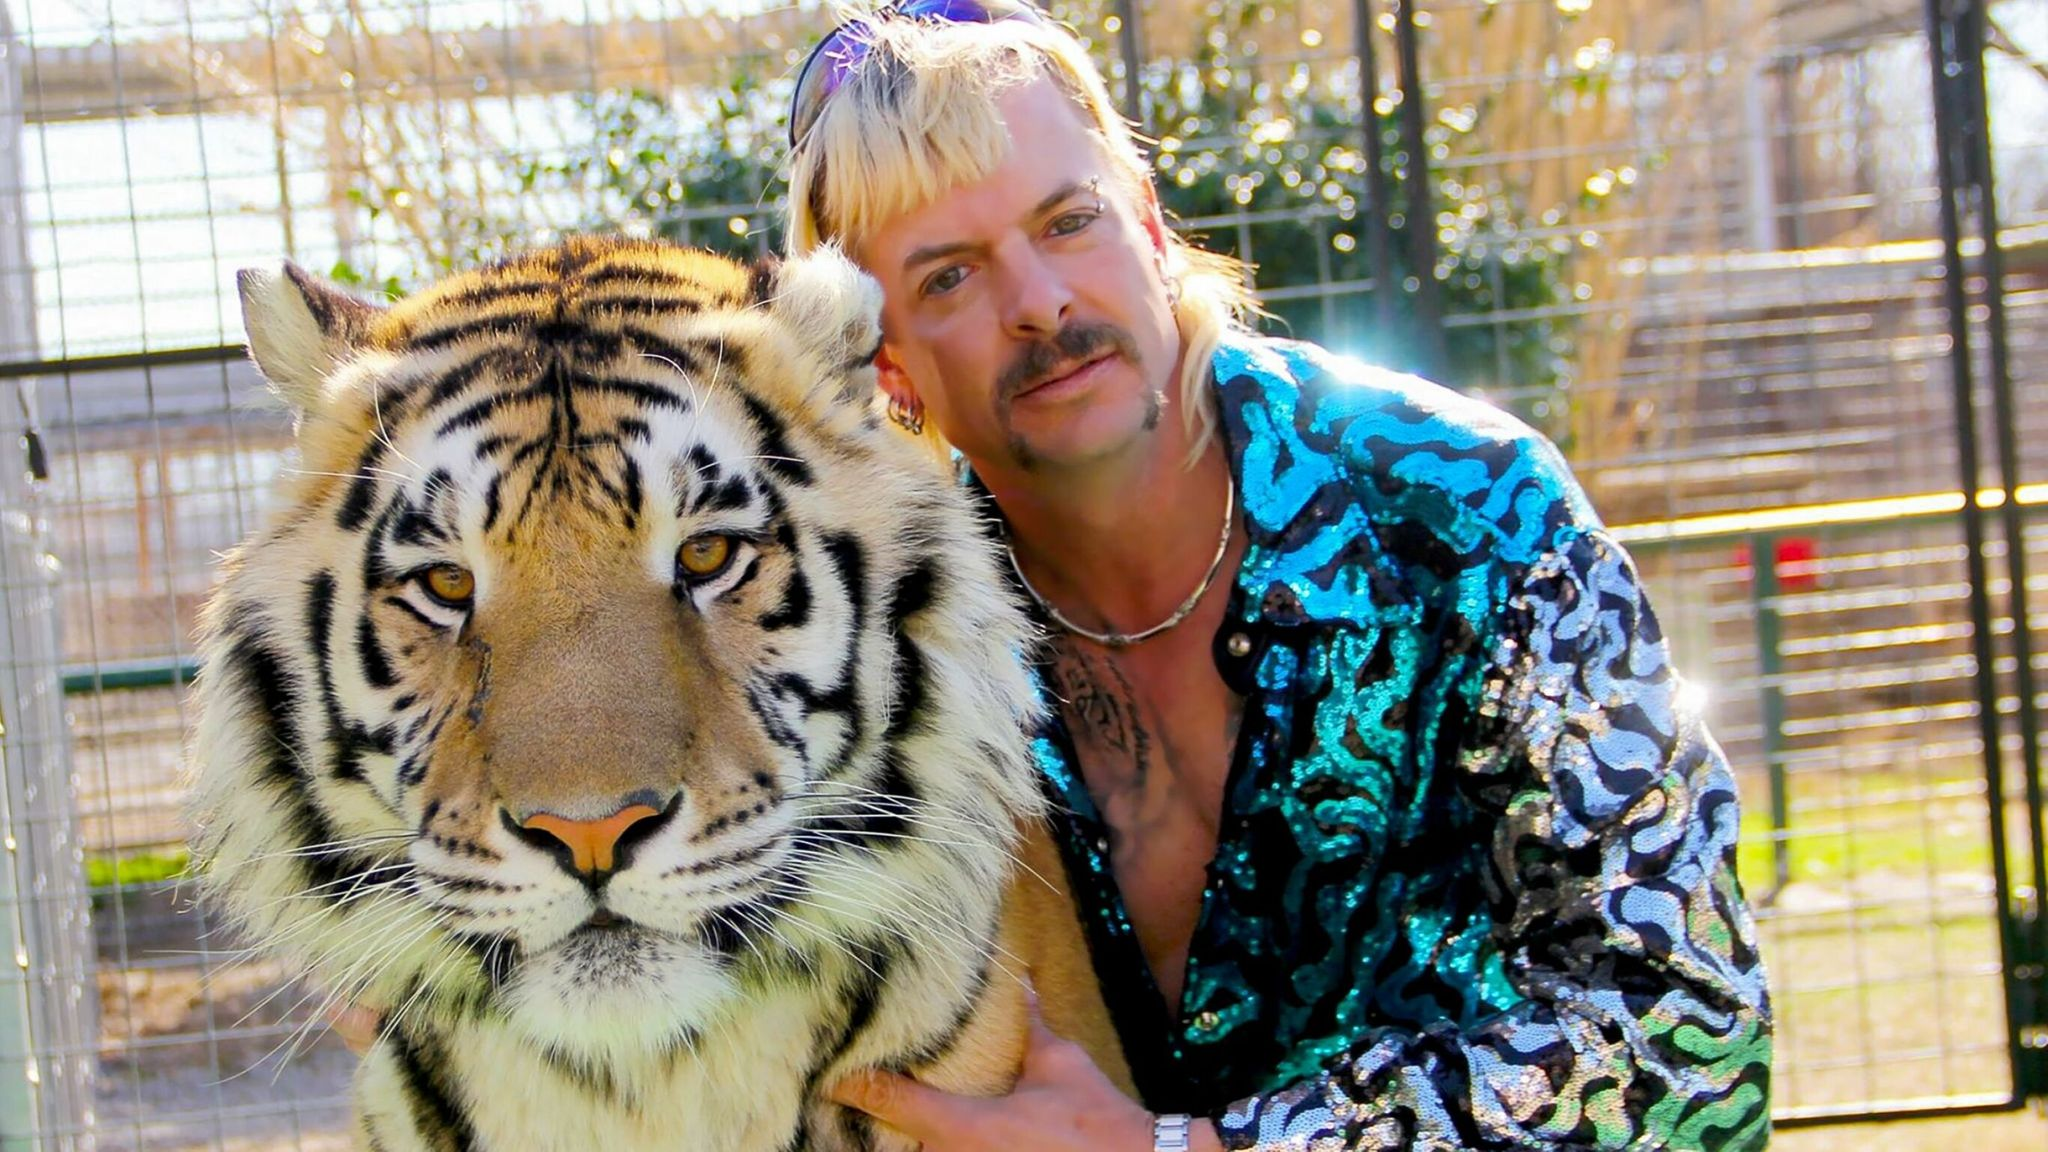 The Tiger King series followed the eventful working life of Joe Exotic